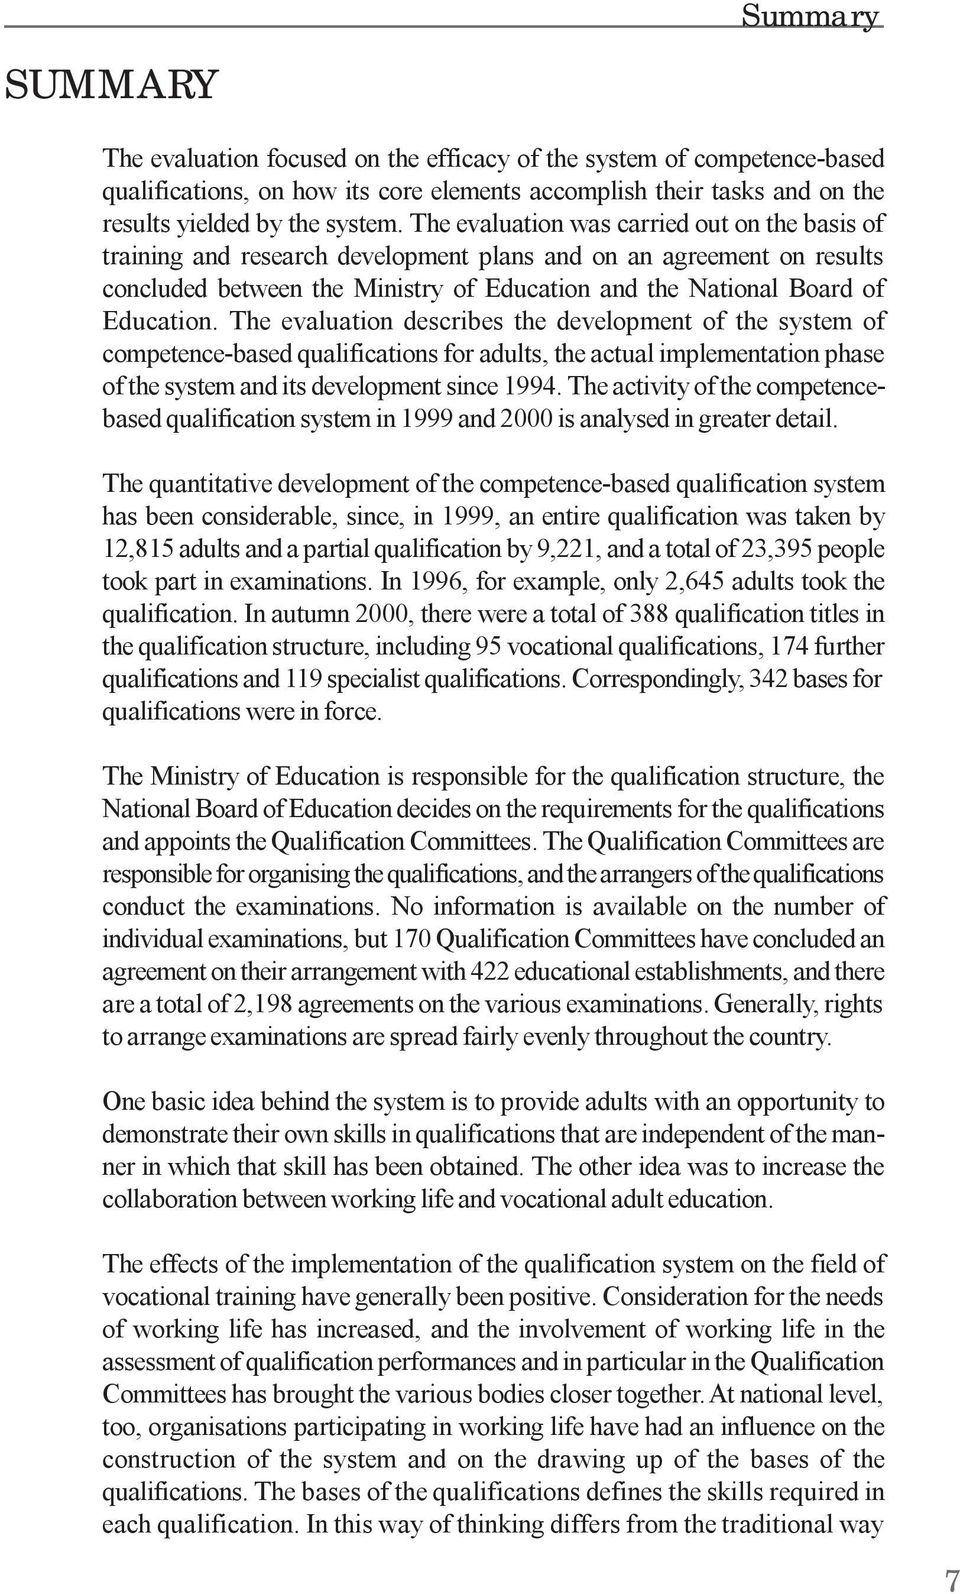 The evaluation describes the development of the system of competence-based qualifications for adults, the actual implementation phase of the system and its development since 1994.